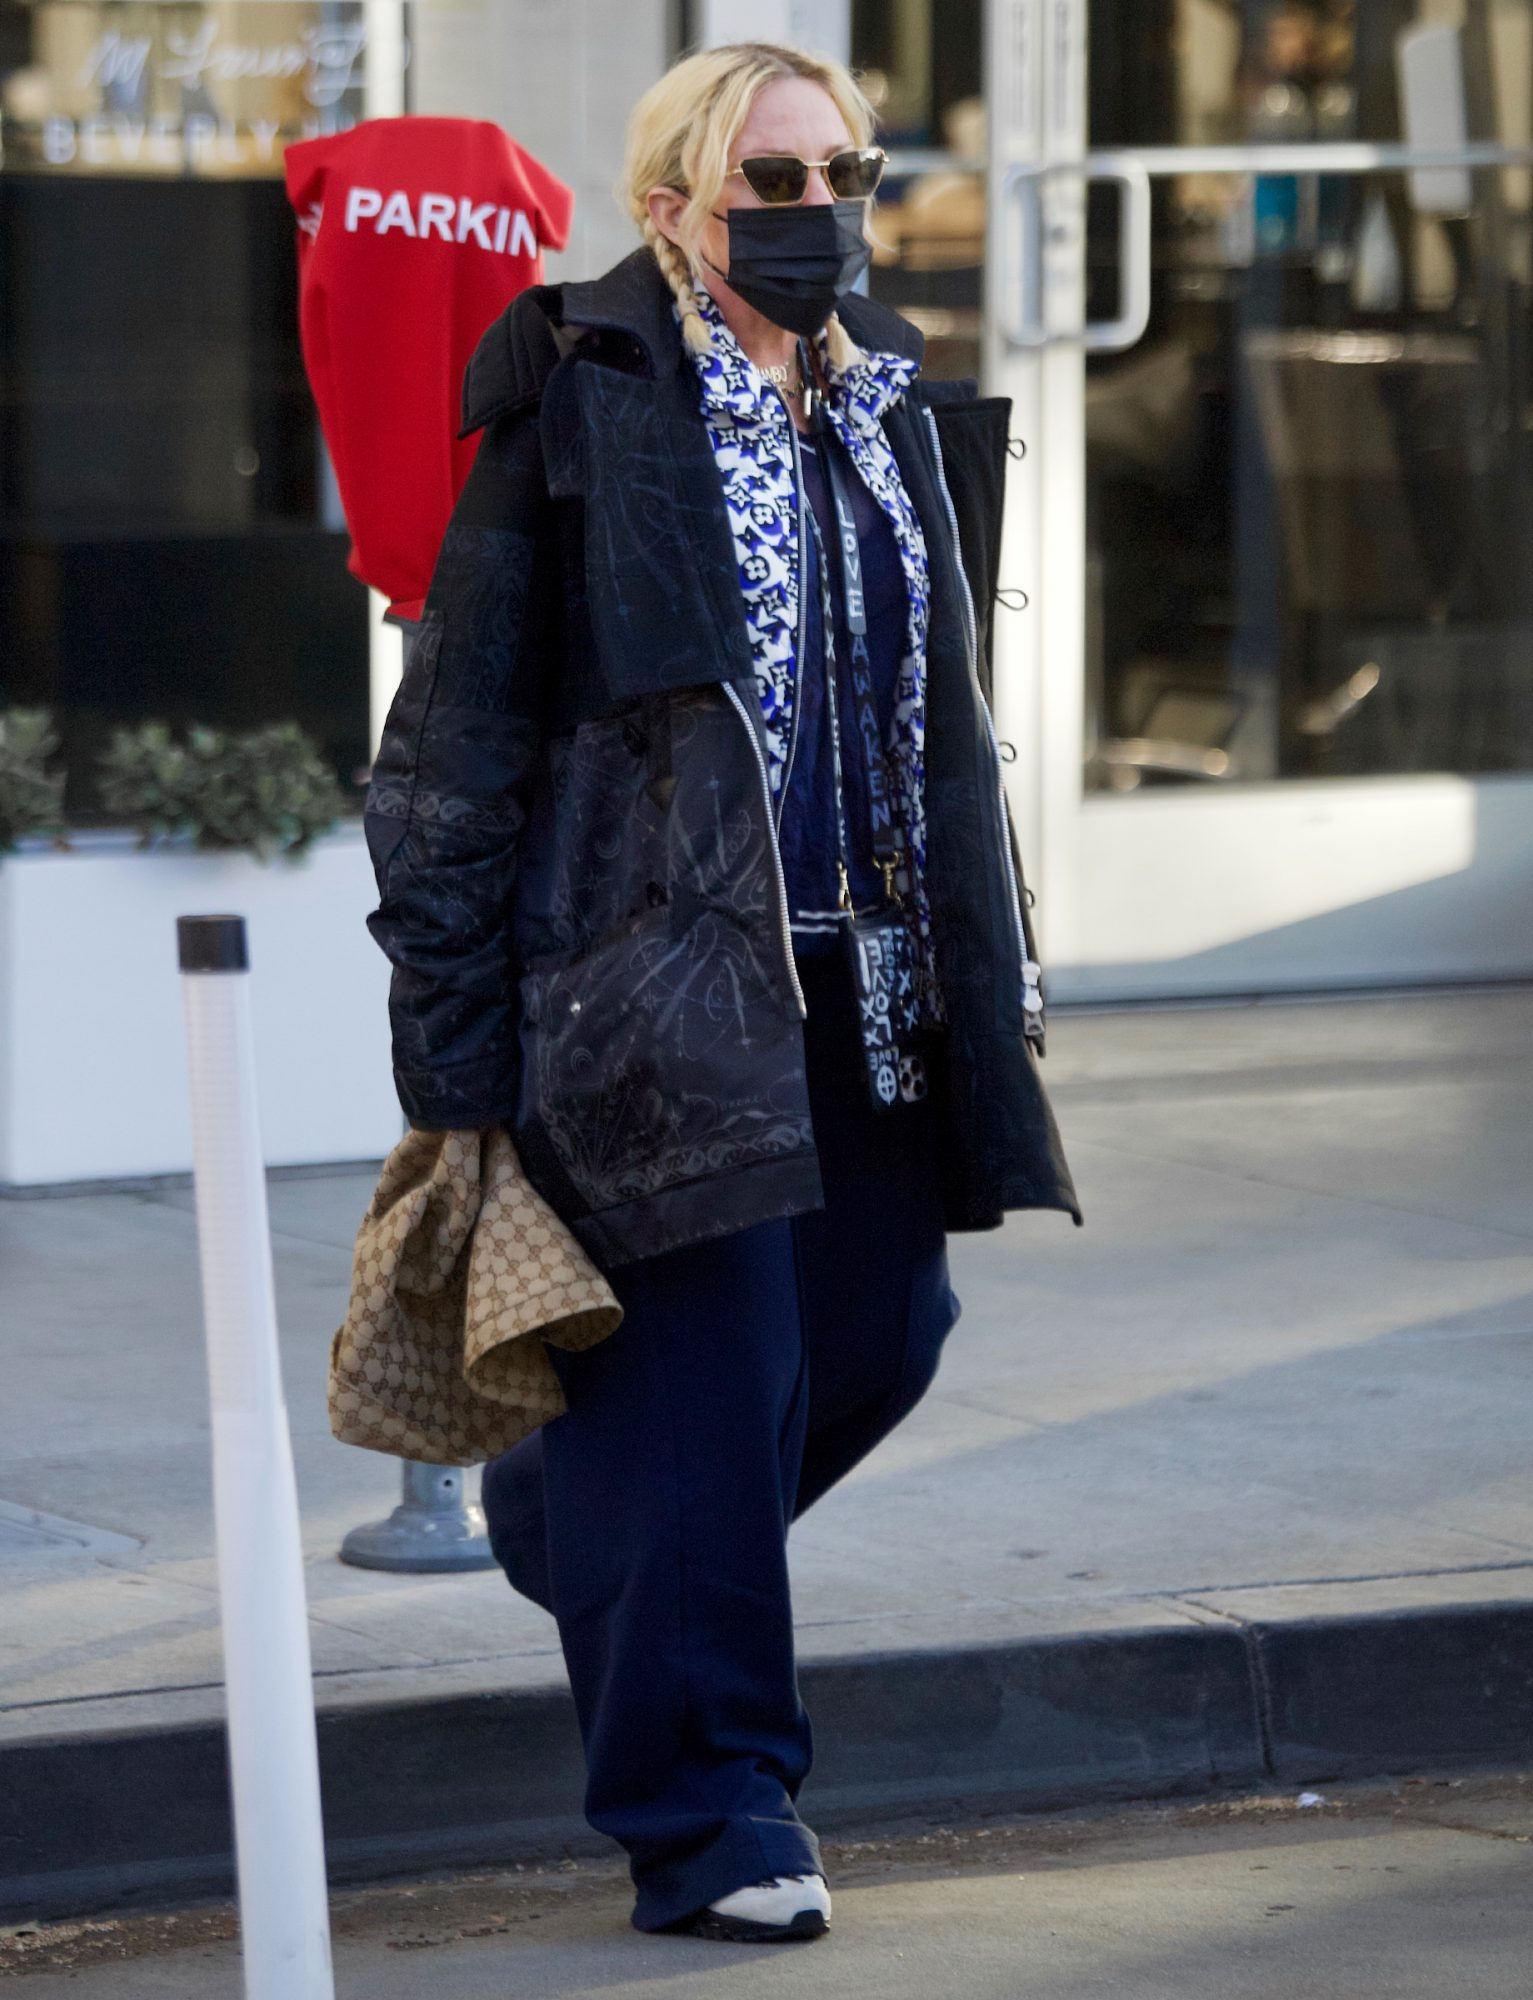 Madonna Showcases Her Funky Fashion In Floppy Gucci Hat And Louis Vuitton Vest While Visiting A Beverly Hills Dermatologist